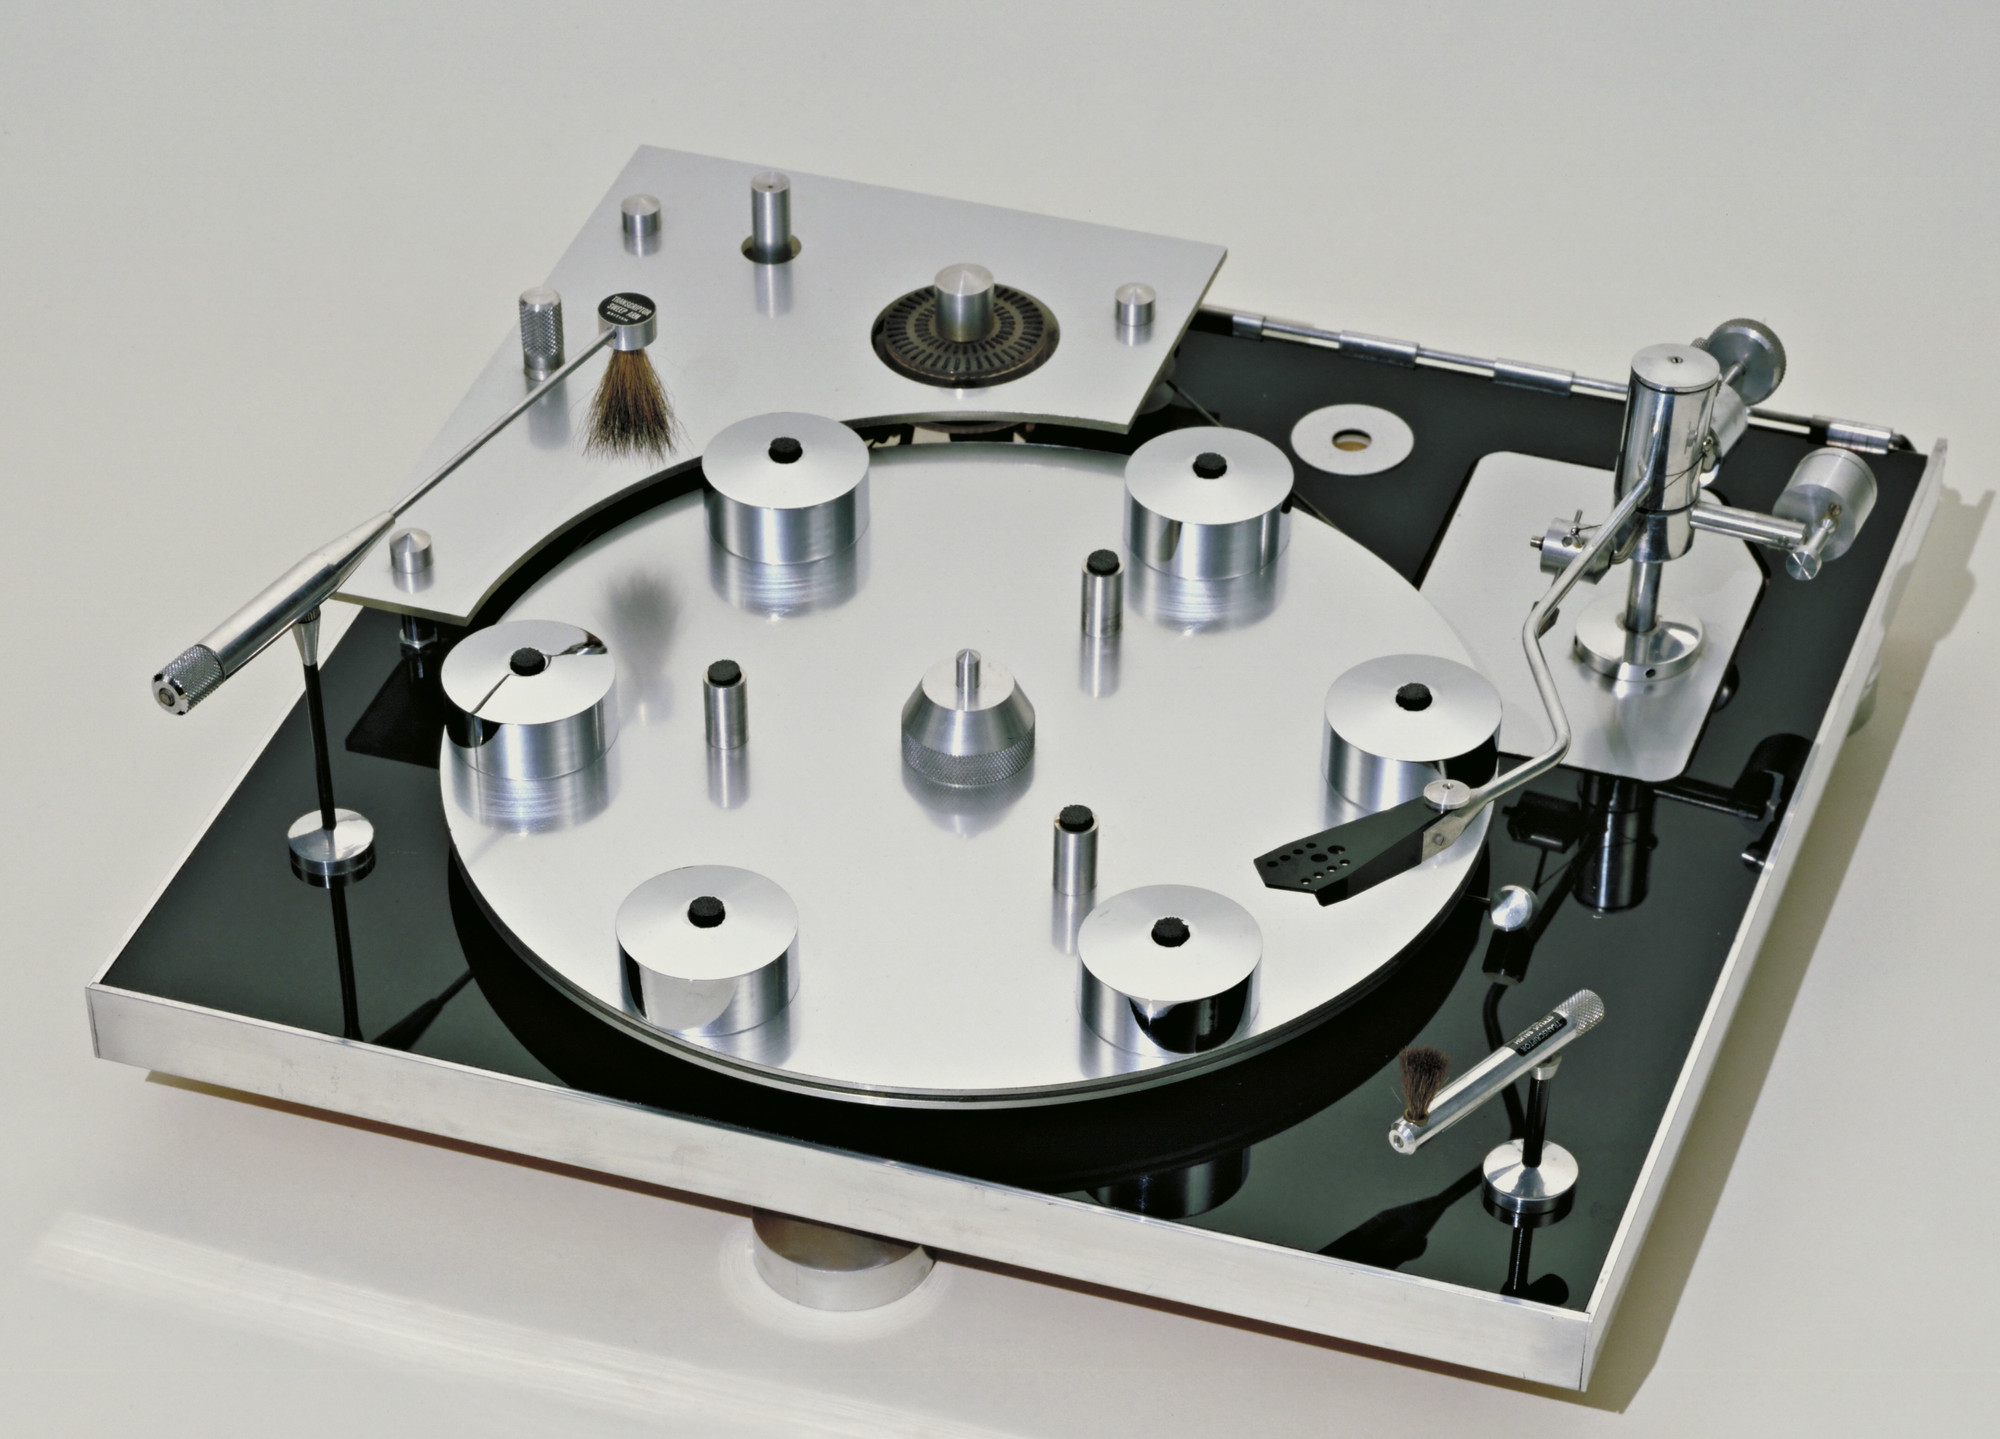 David Gammon. Turntable. 1964